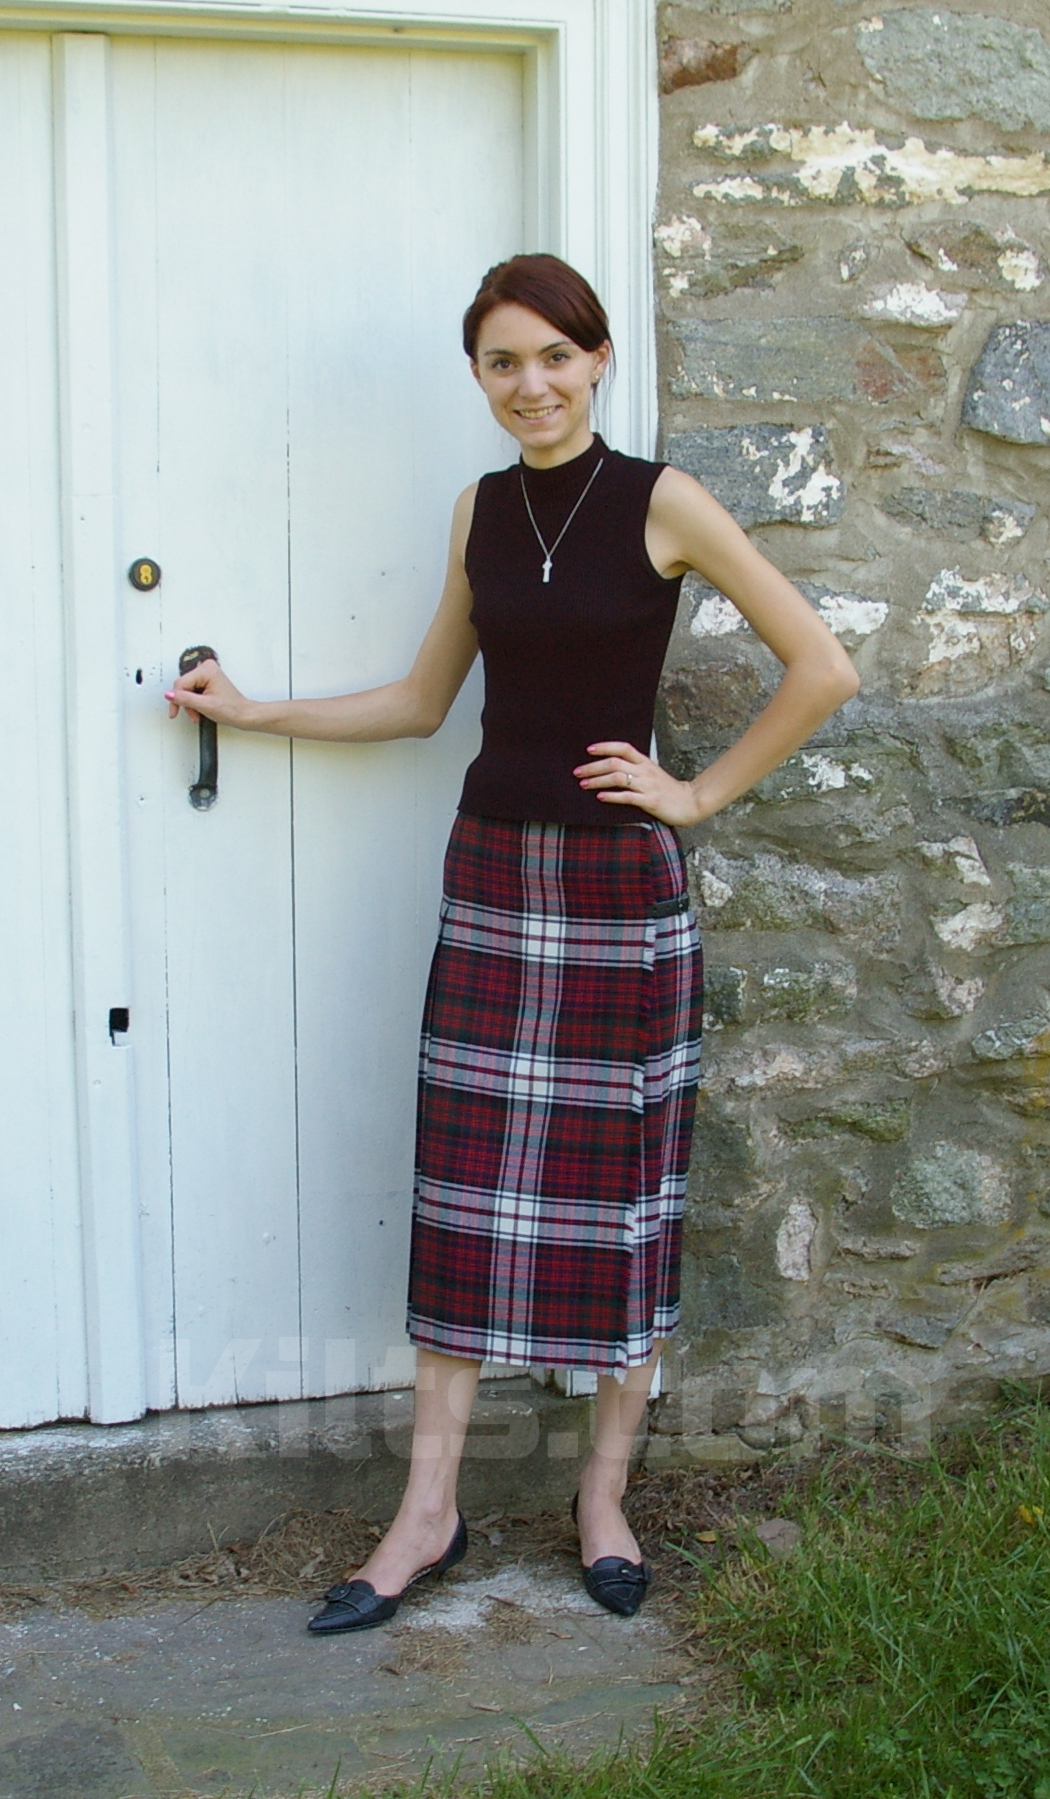 View our Ladies Kilt Skirt for sale.